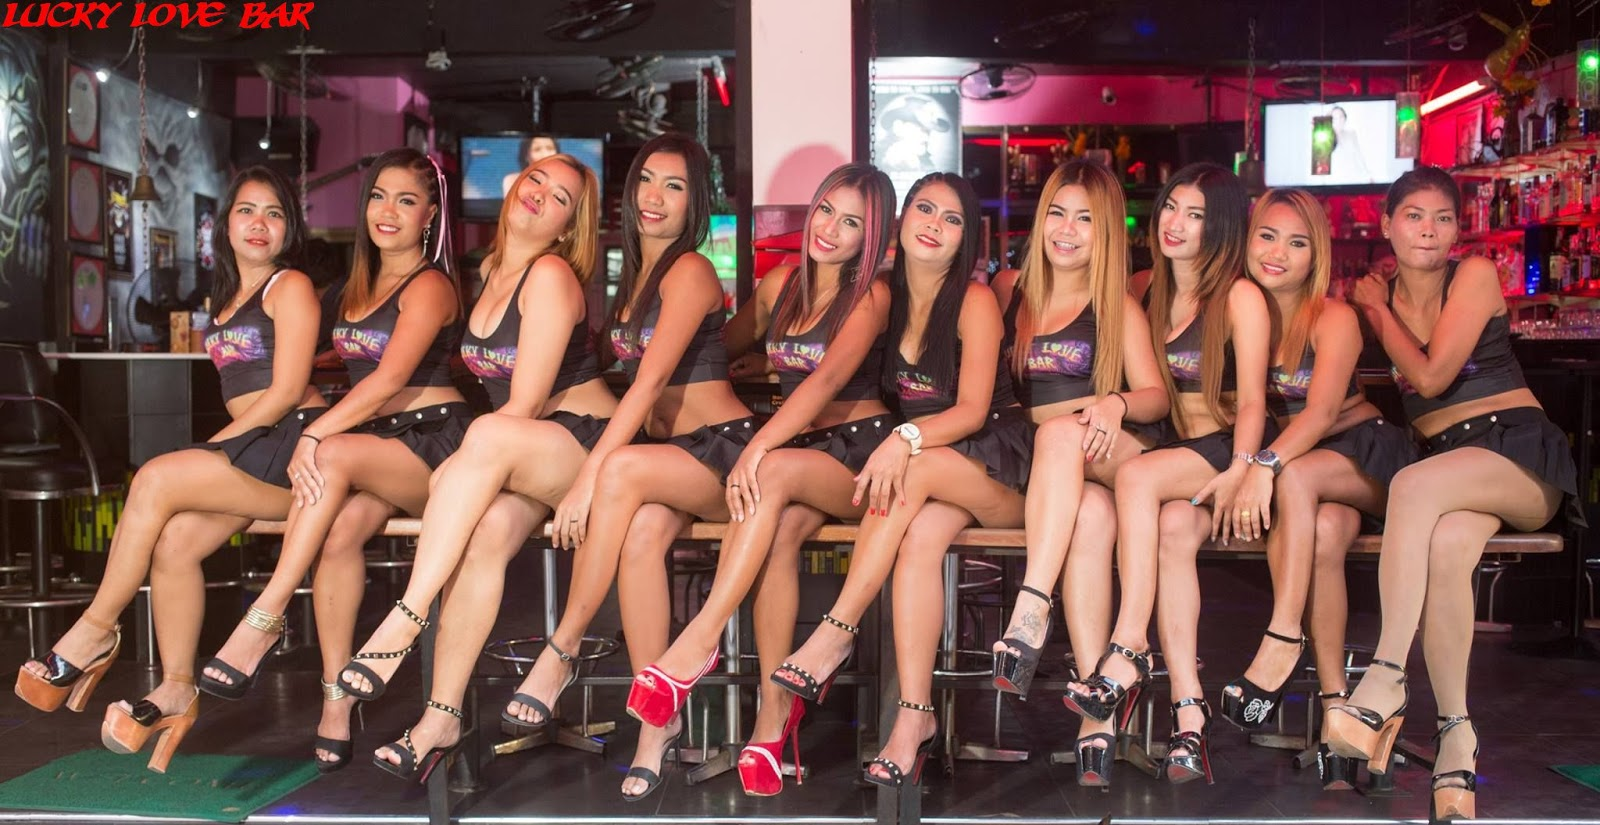 Escorts in thailand archives rockit reports